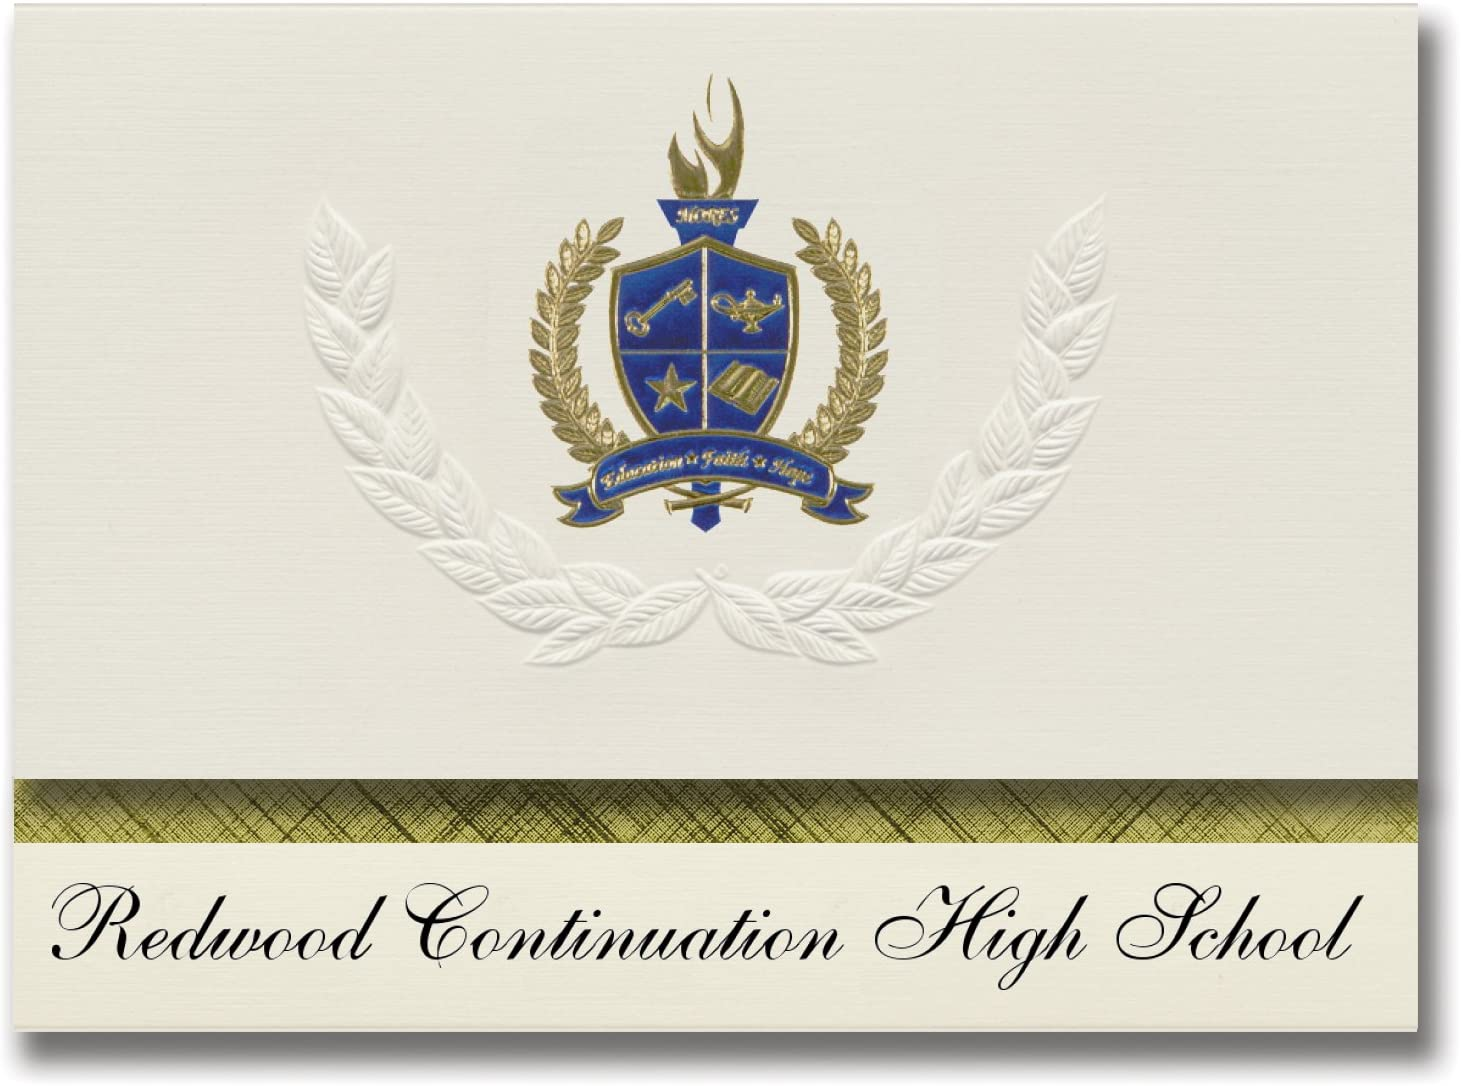 Signature Announcements Redwood Continuation High School (Castro Valley, CA) Graduation Announcements, Presidential Elite Pack 25 with Gold & Blue Metallic Foil seal